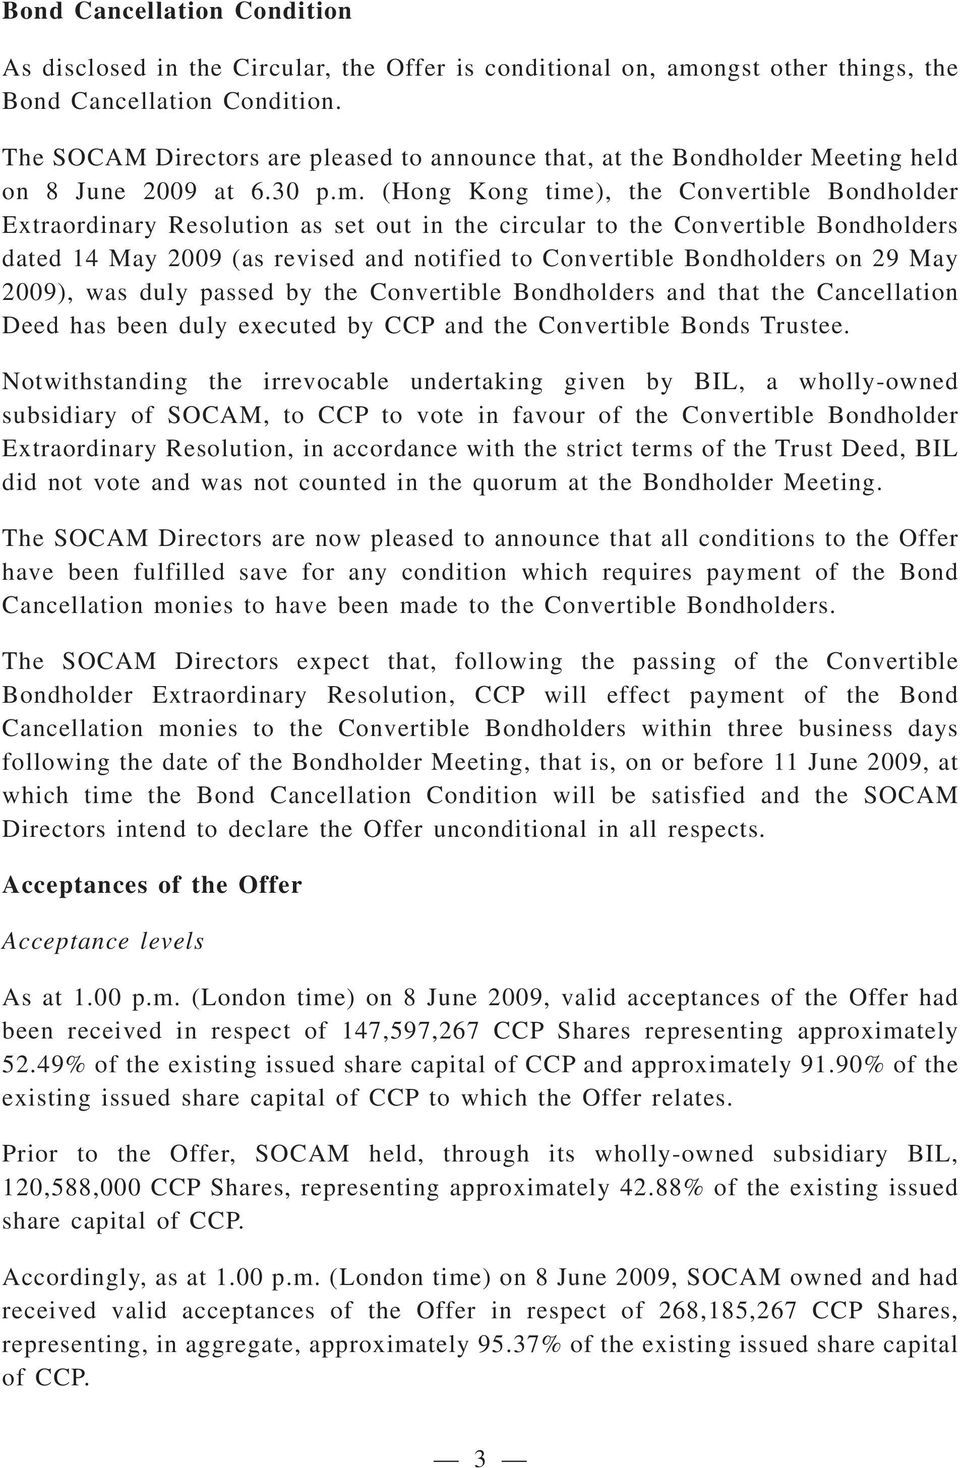 (Hong Kong time), the Convertible Bondholder Extraordinary Resolution as set out in the circular to the Convertible Bondholders dated 14 May 2009 (as revised and notified to Convertible Bondholders